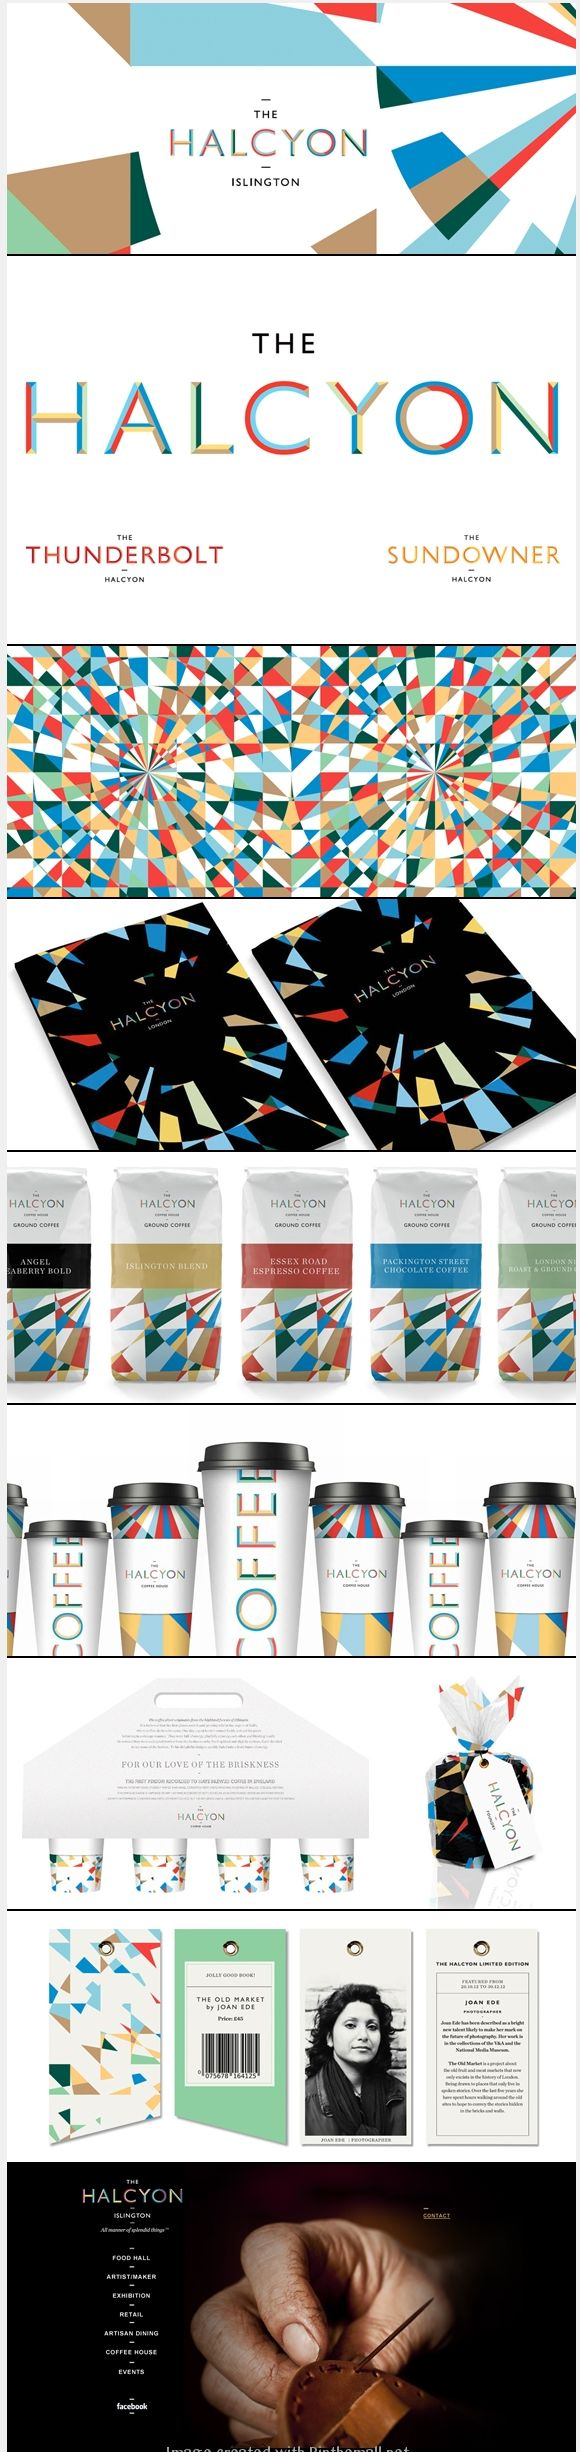 Halcyon branding and packaging